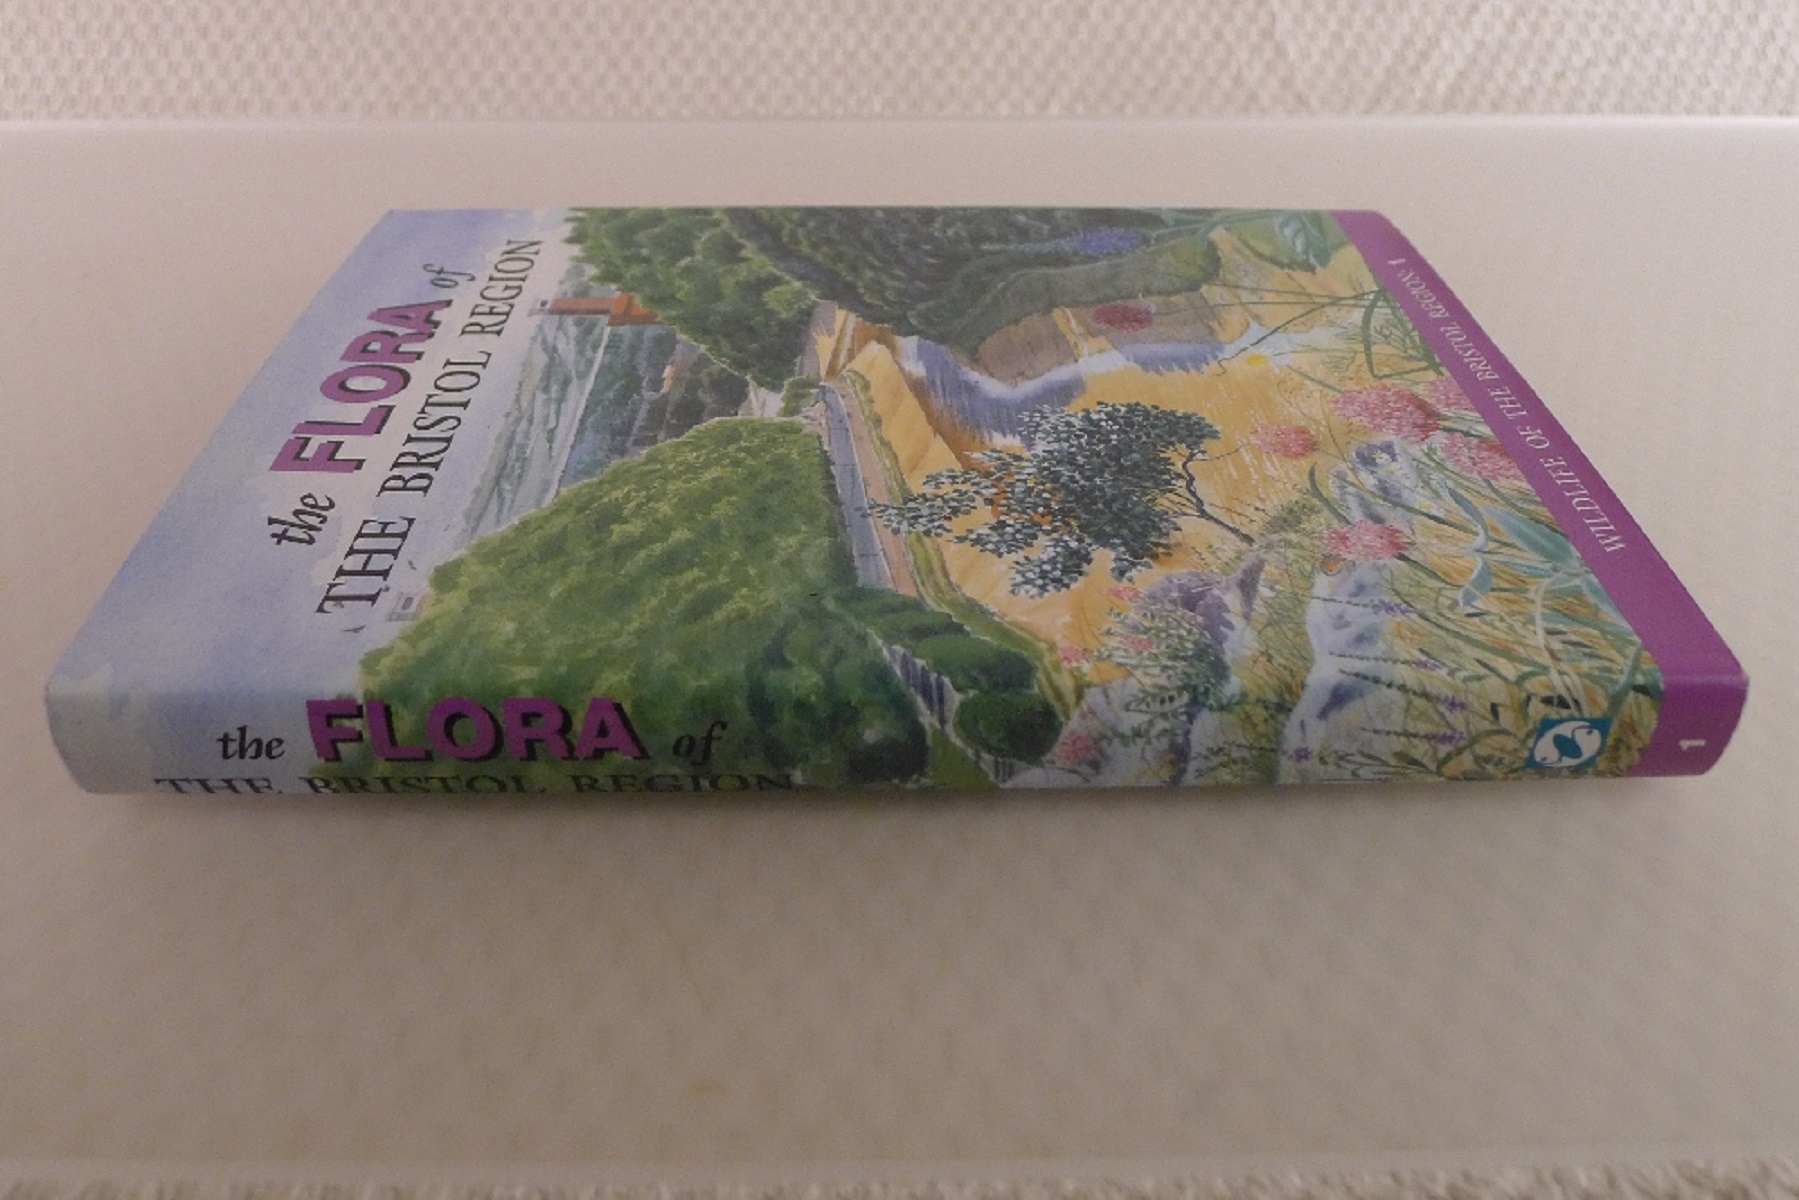 2 Books The Flora of The Bristol Region by Ian Green, Rupert Higgins, Clare Kitchen and Mark Kitchen - Image 2 of 8